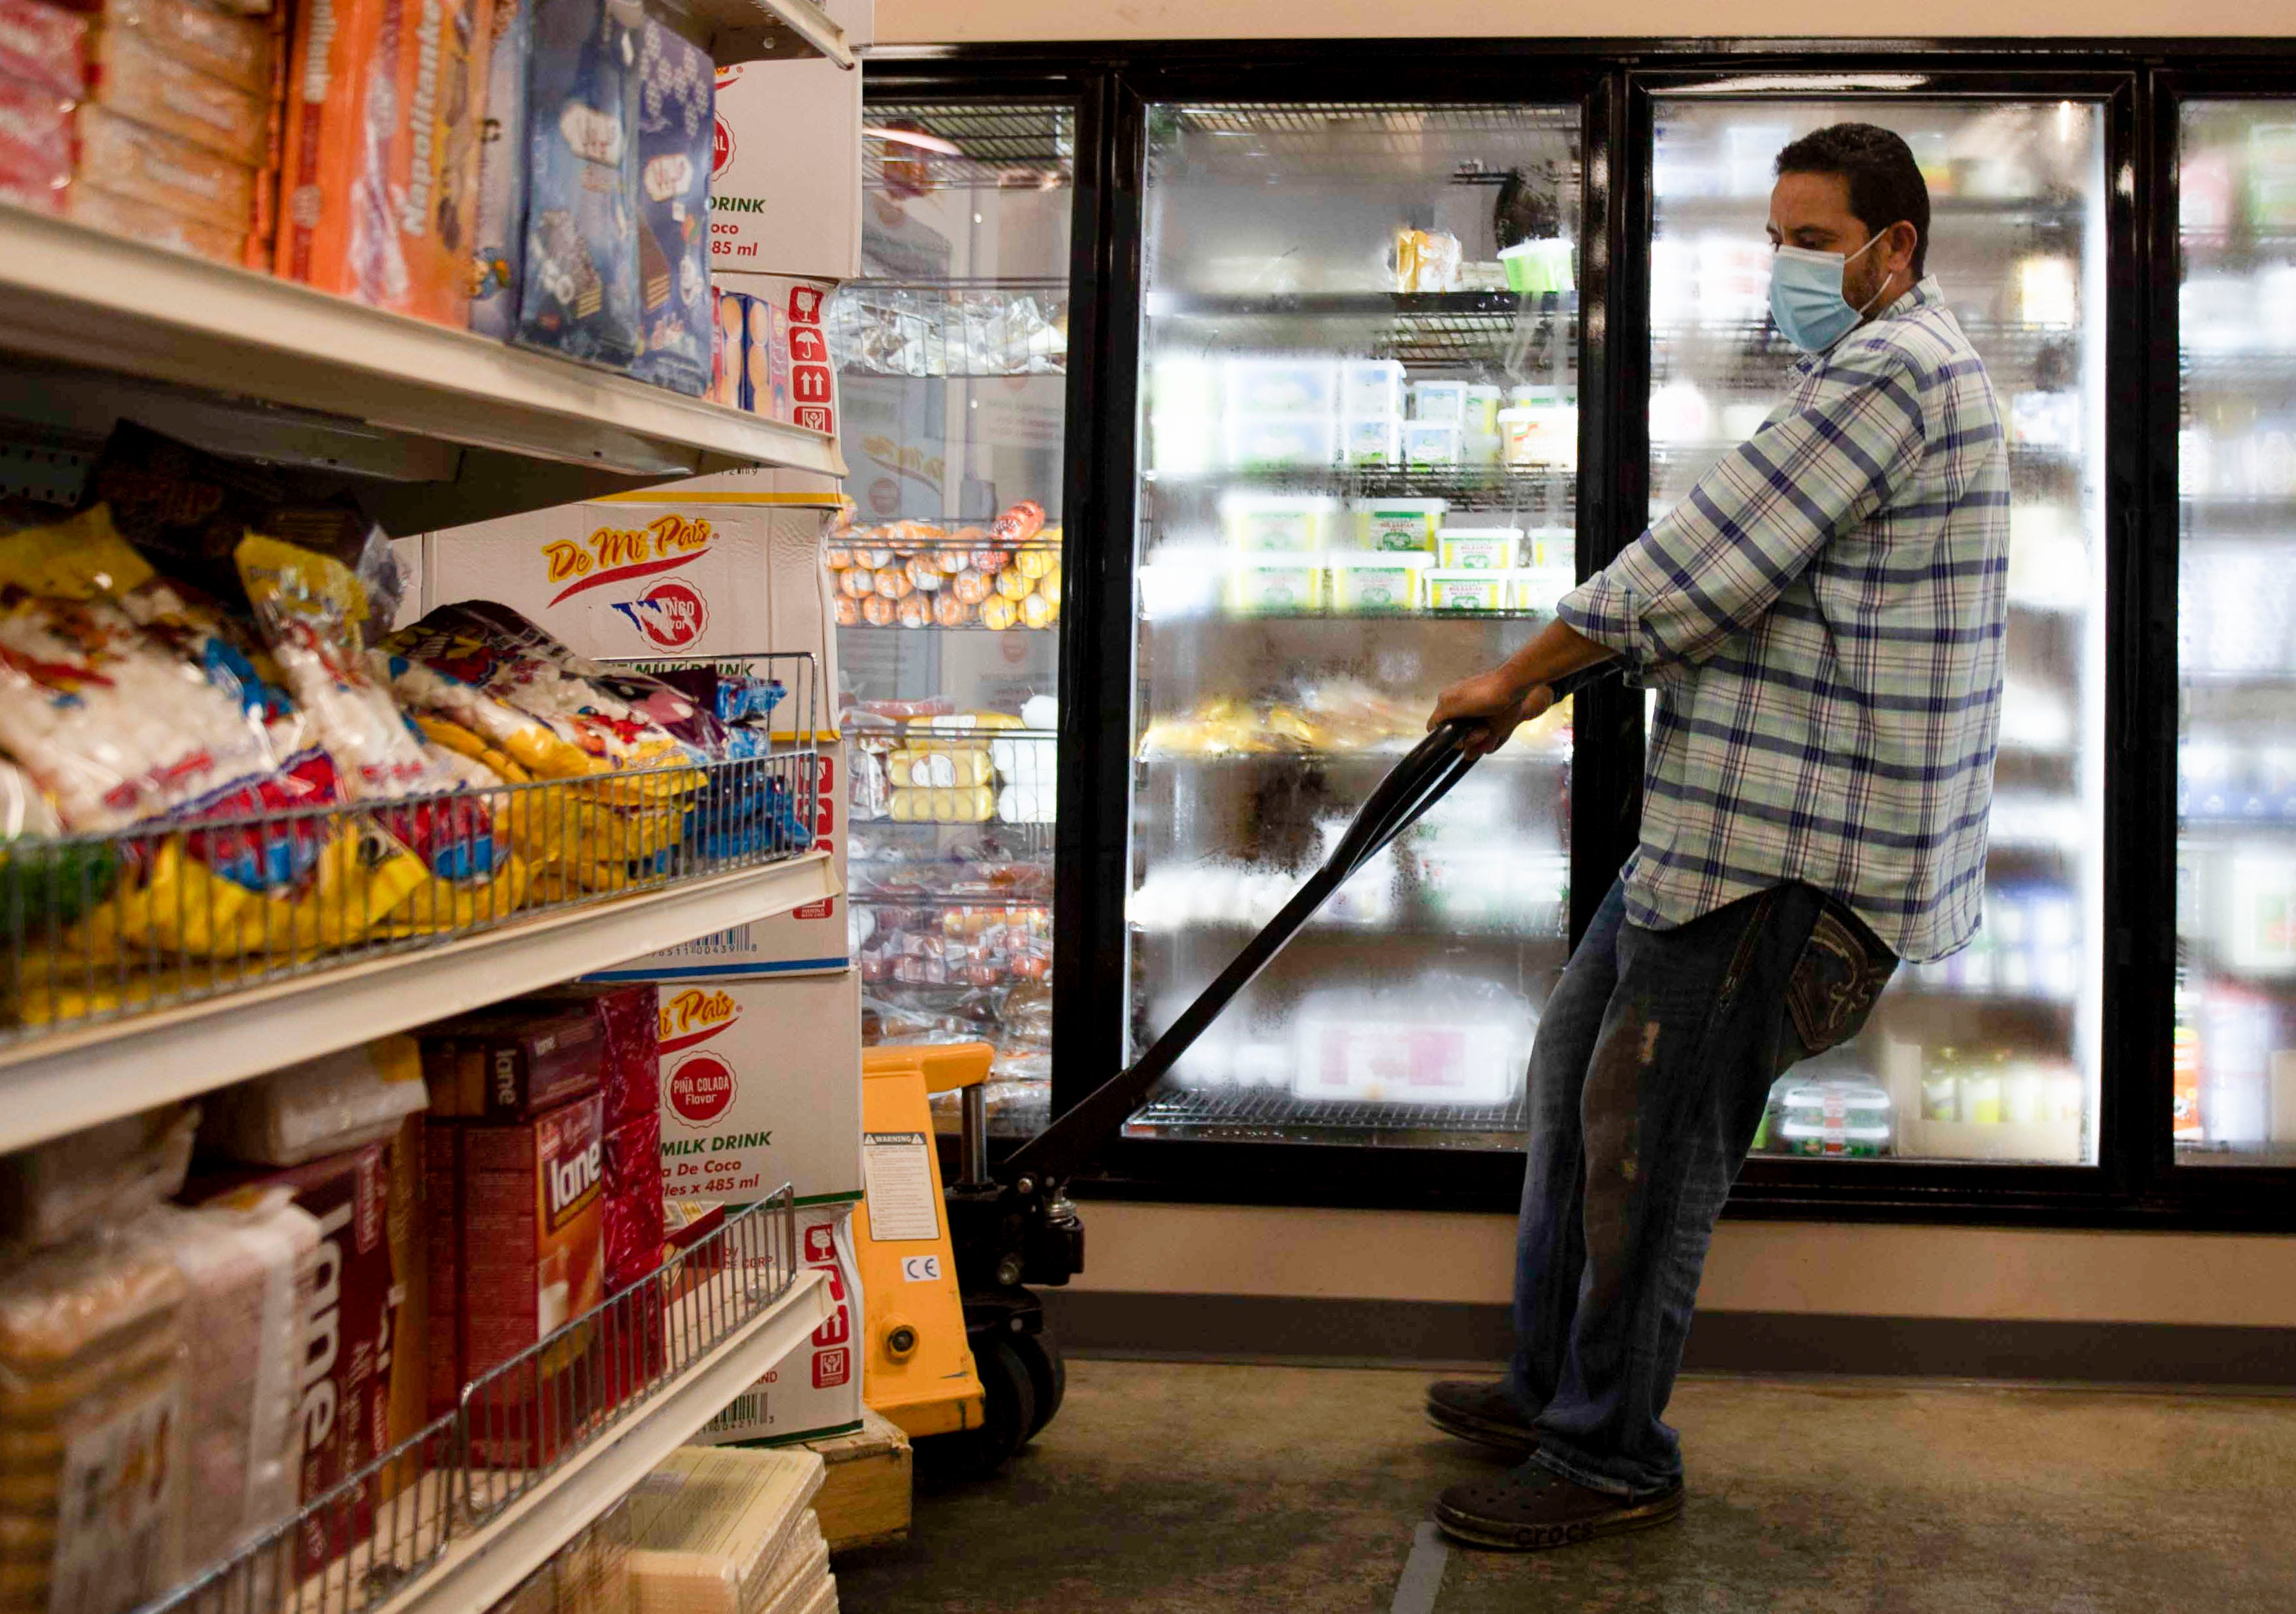 Tamar Eldahan moves the boxes around Alrahmah Mediterranean Grocery in Cordova on Tuesday, Sept. 1, 2020. The Eldahan family has owned the business for 12 years and has served their community in Memphis despite the pandemic and have provided them with essential products.